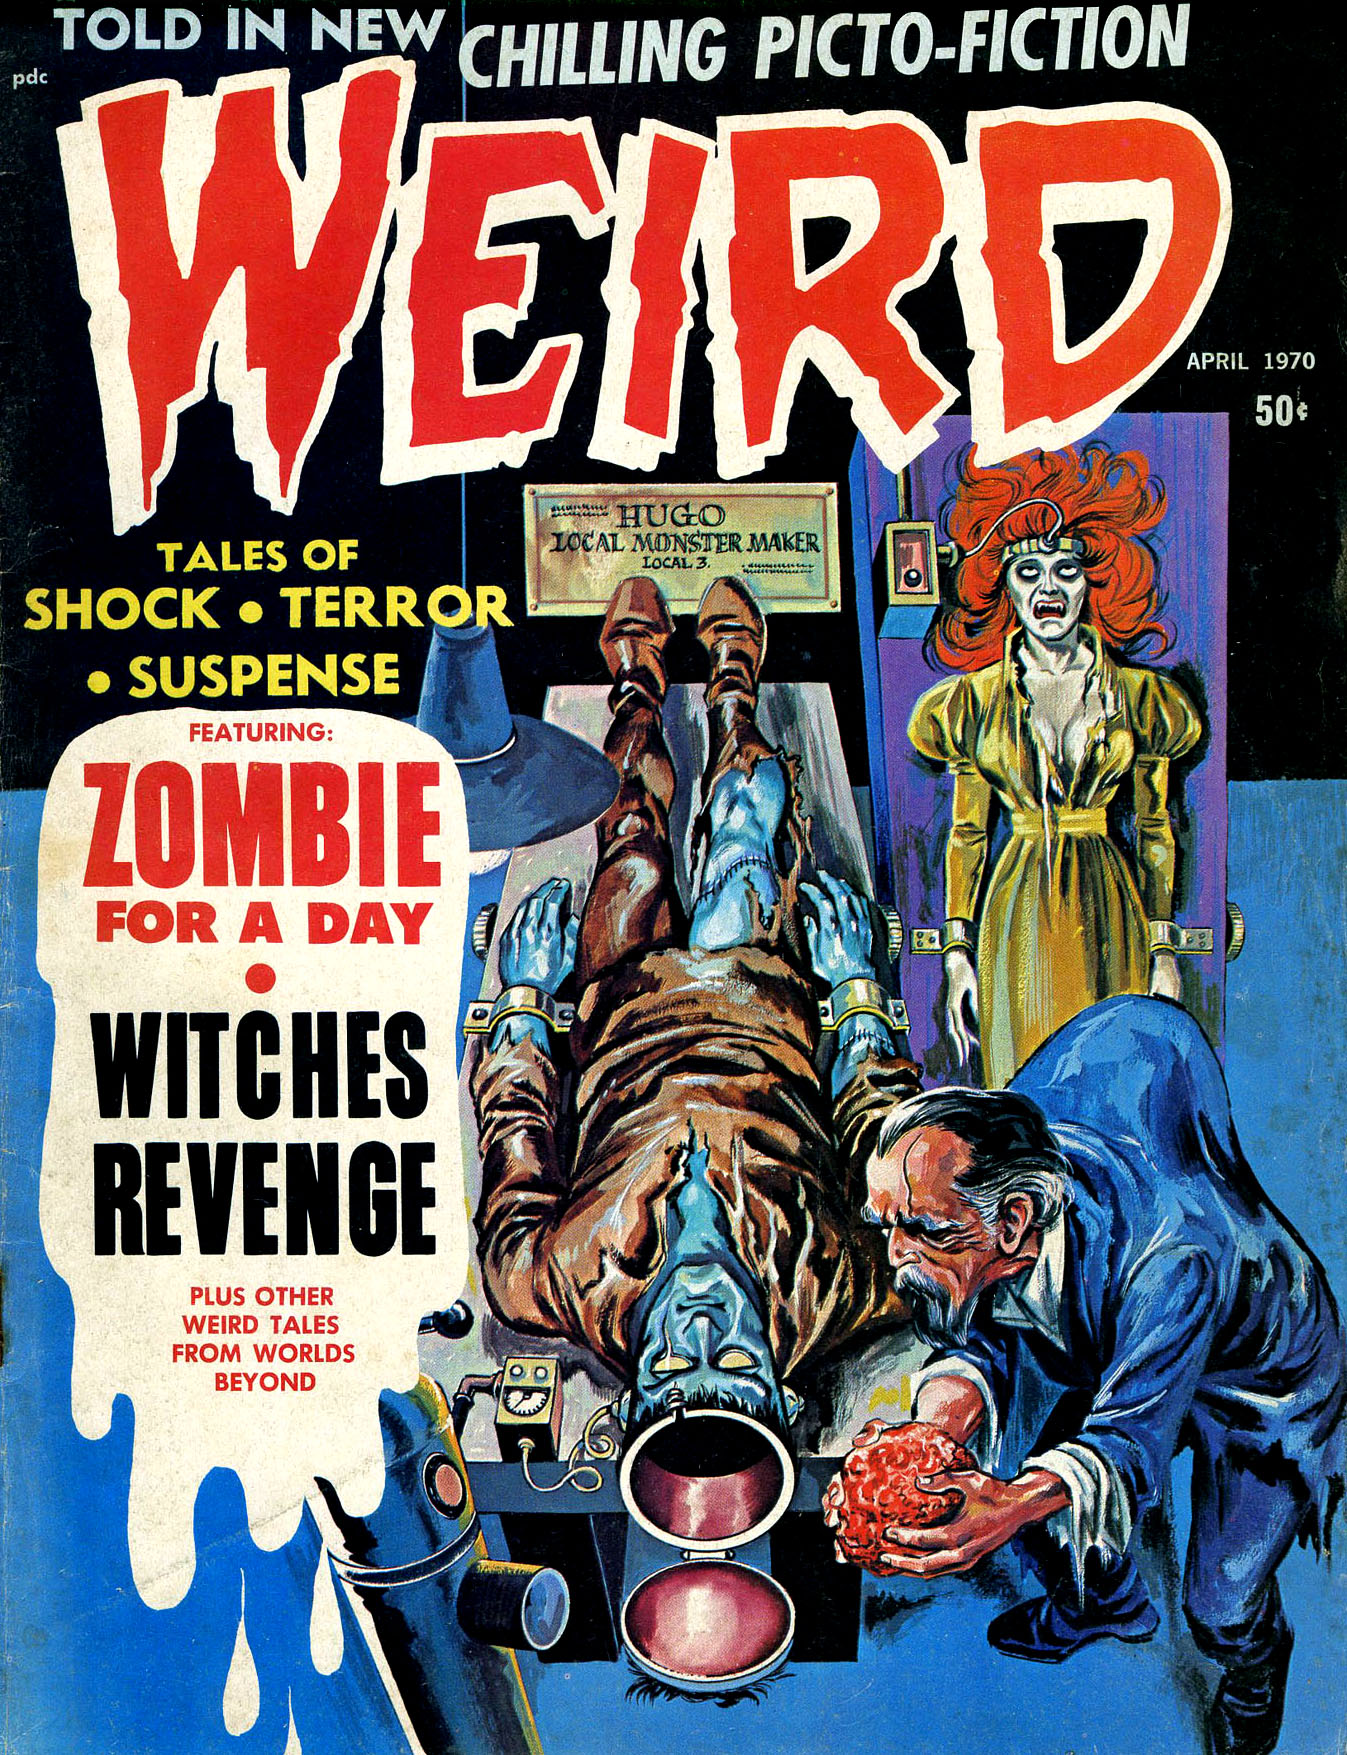 Weird Vol. 04 #2 (Eerie Publications, 1970)